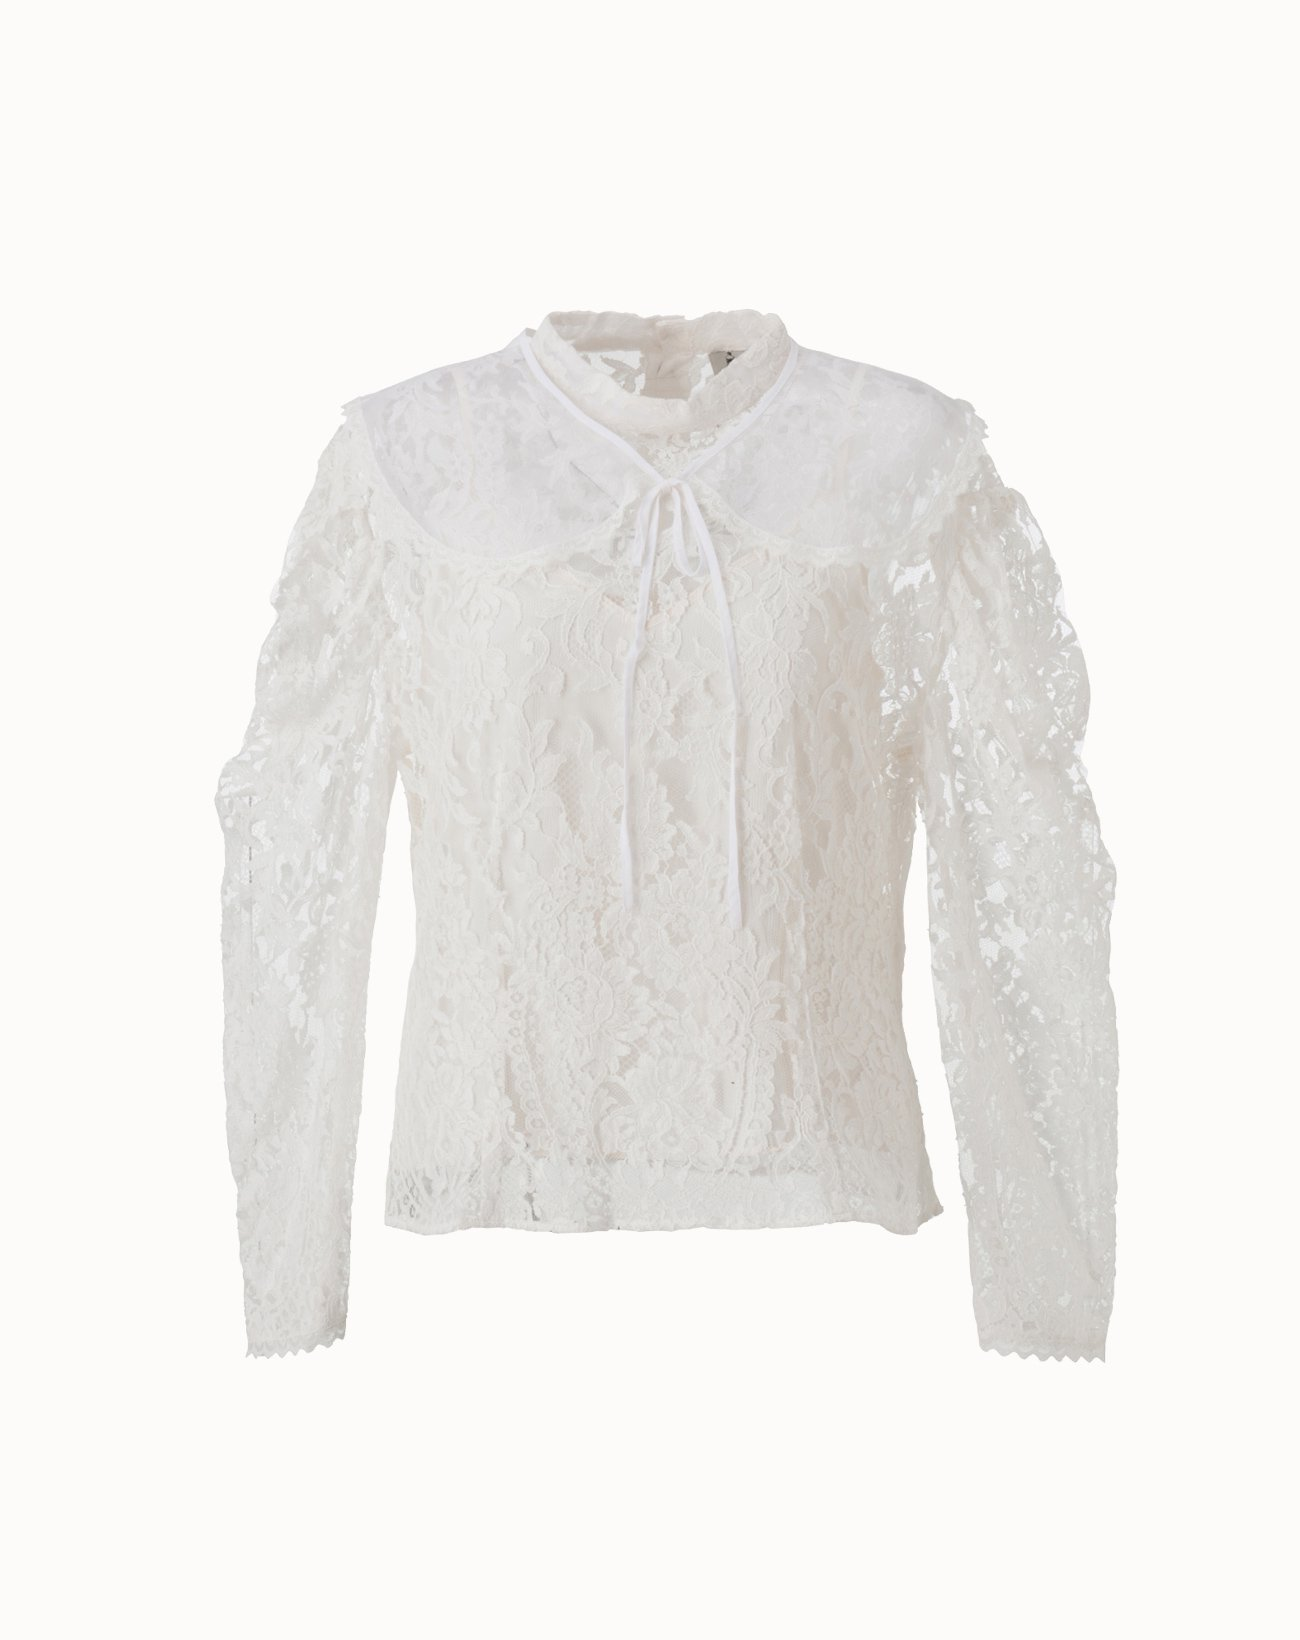 Lace Blouse with Cape - Off White